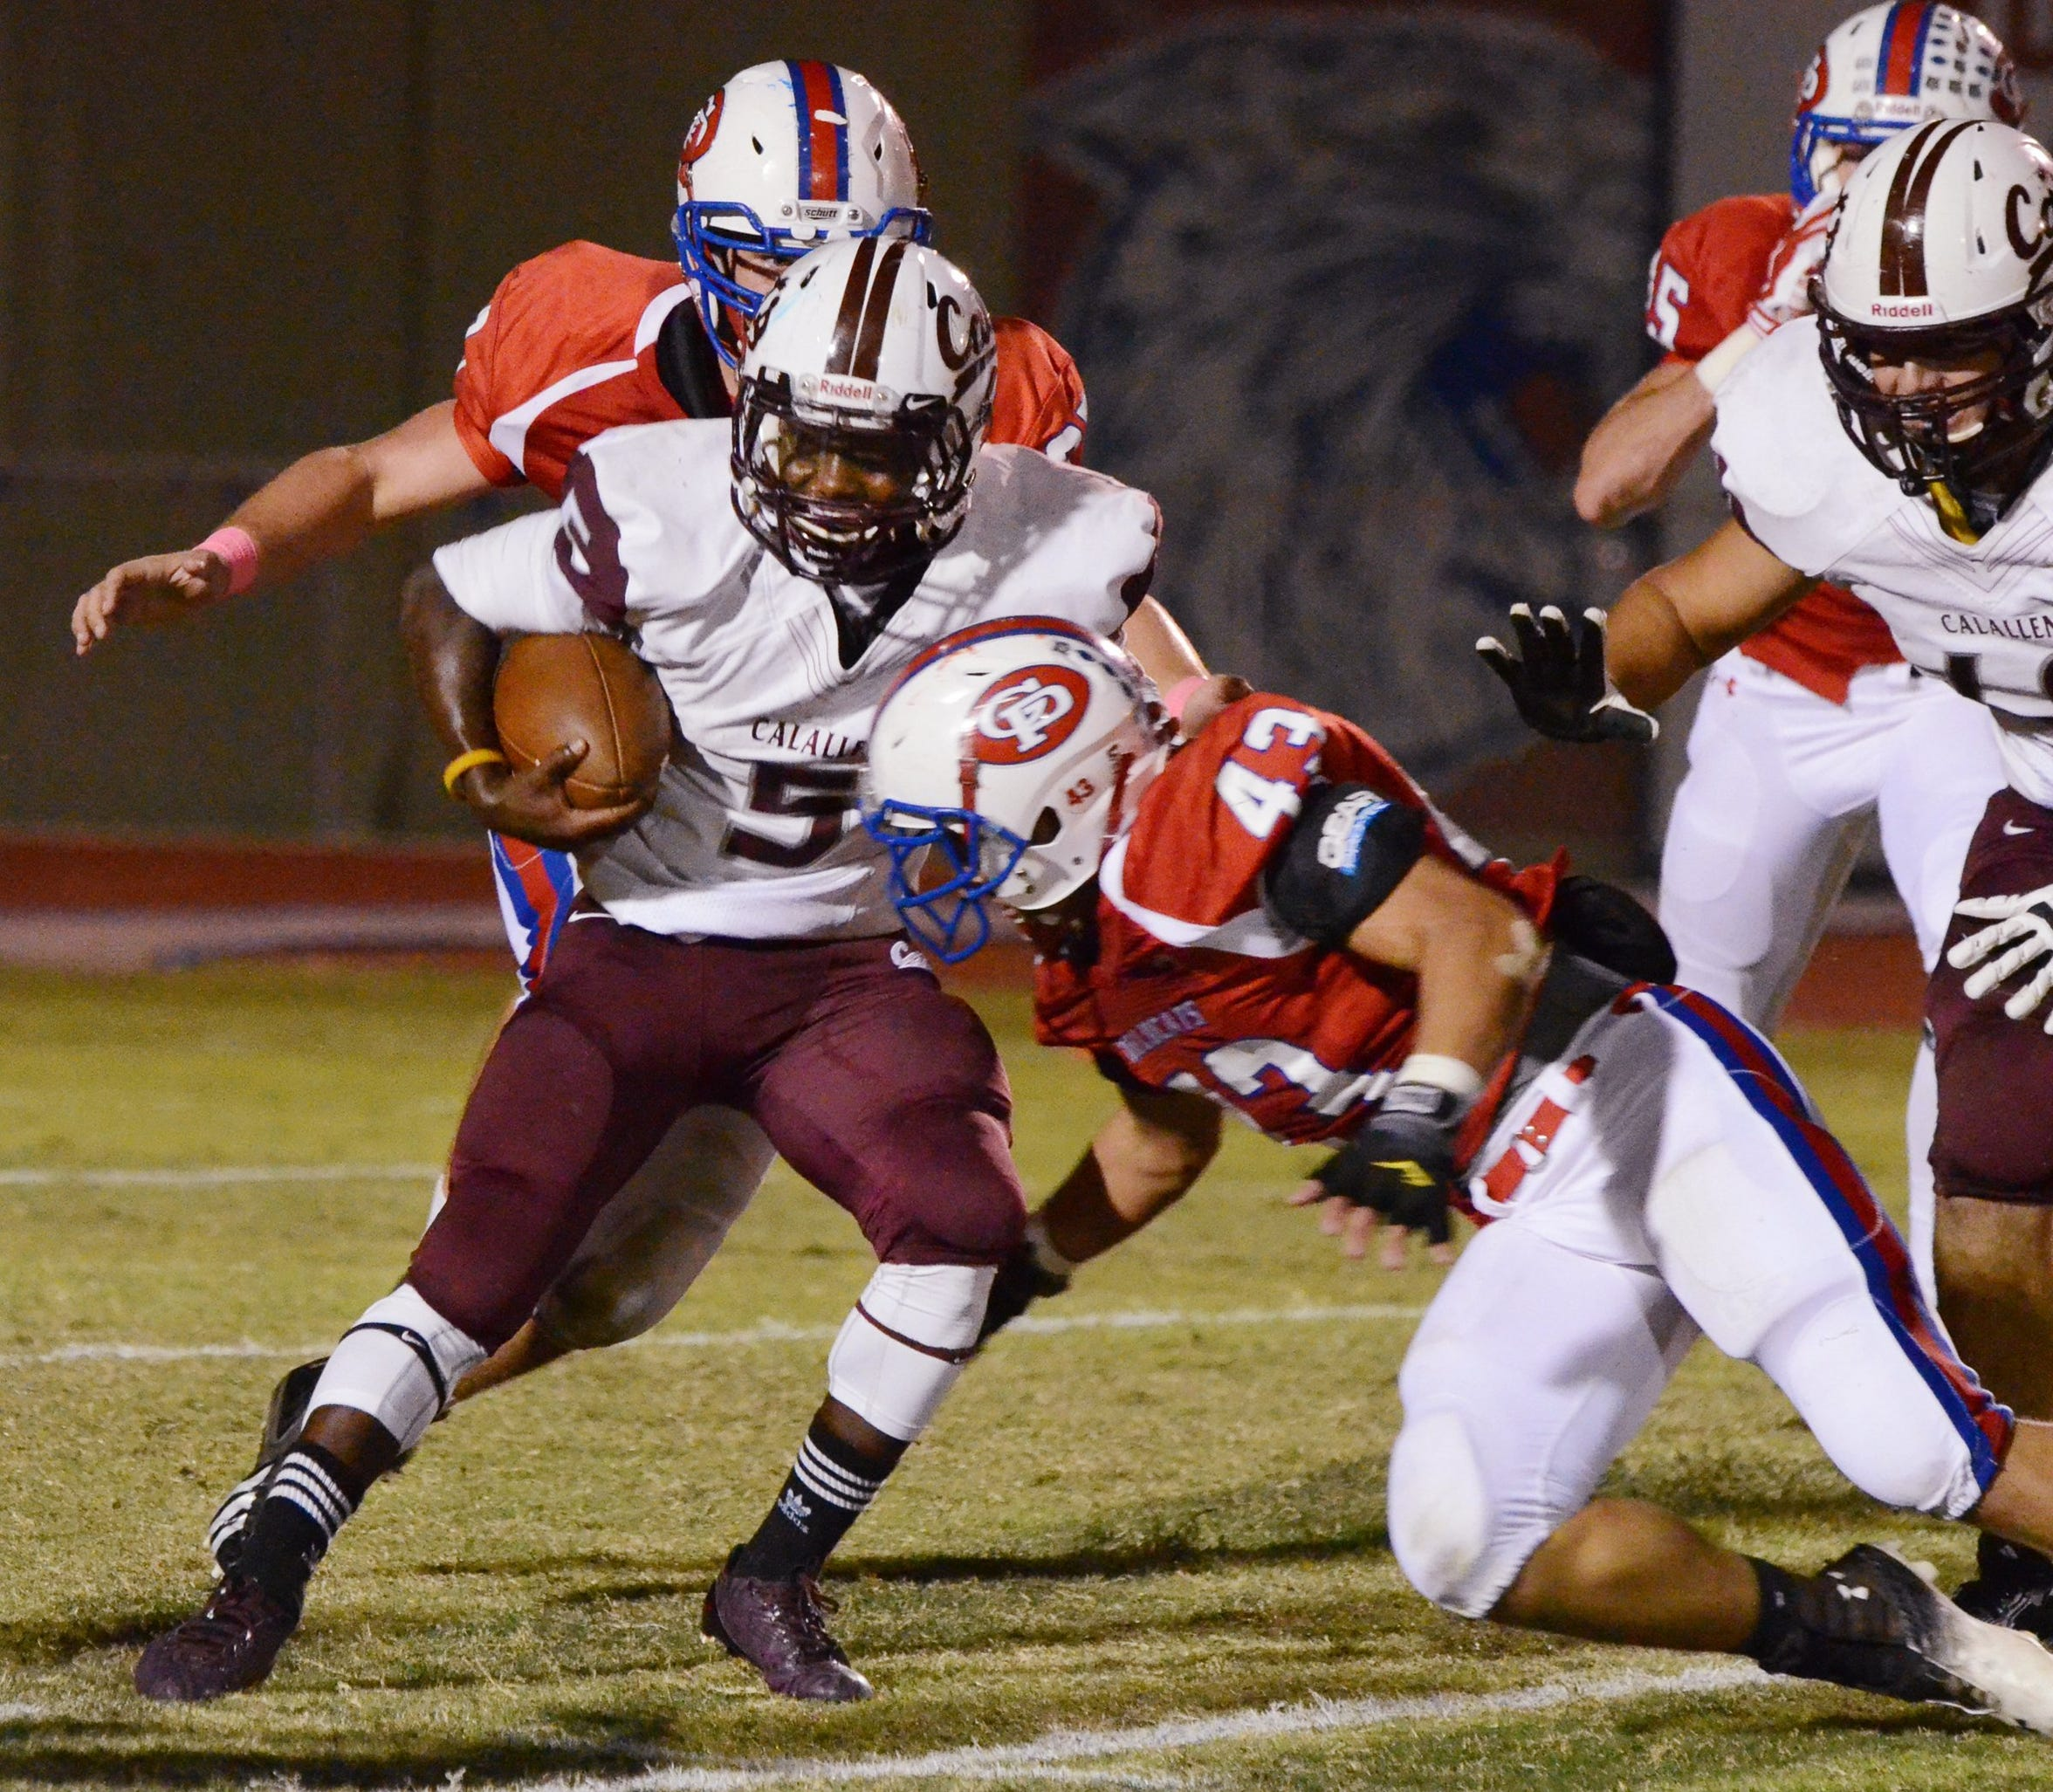 Chris Price played at Calallen from 2012 to 2014, which his best season rushing in 2013 when he rshed for 701 yards.